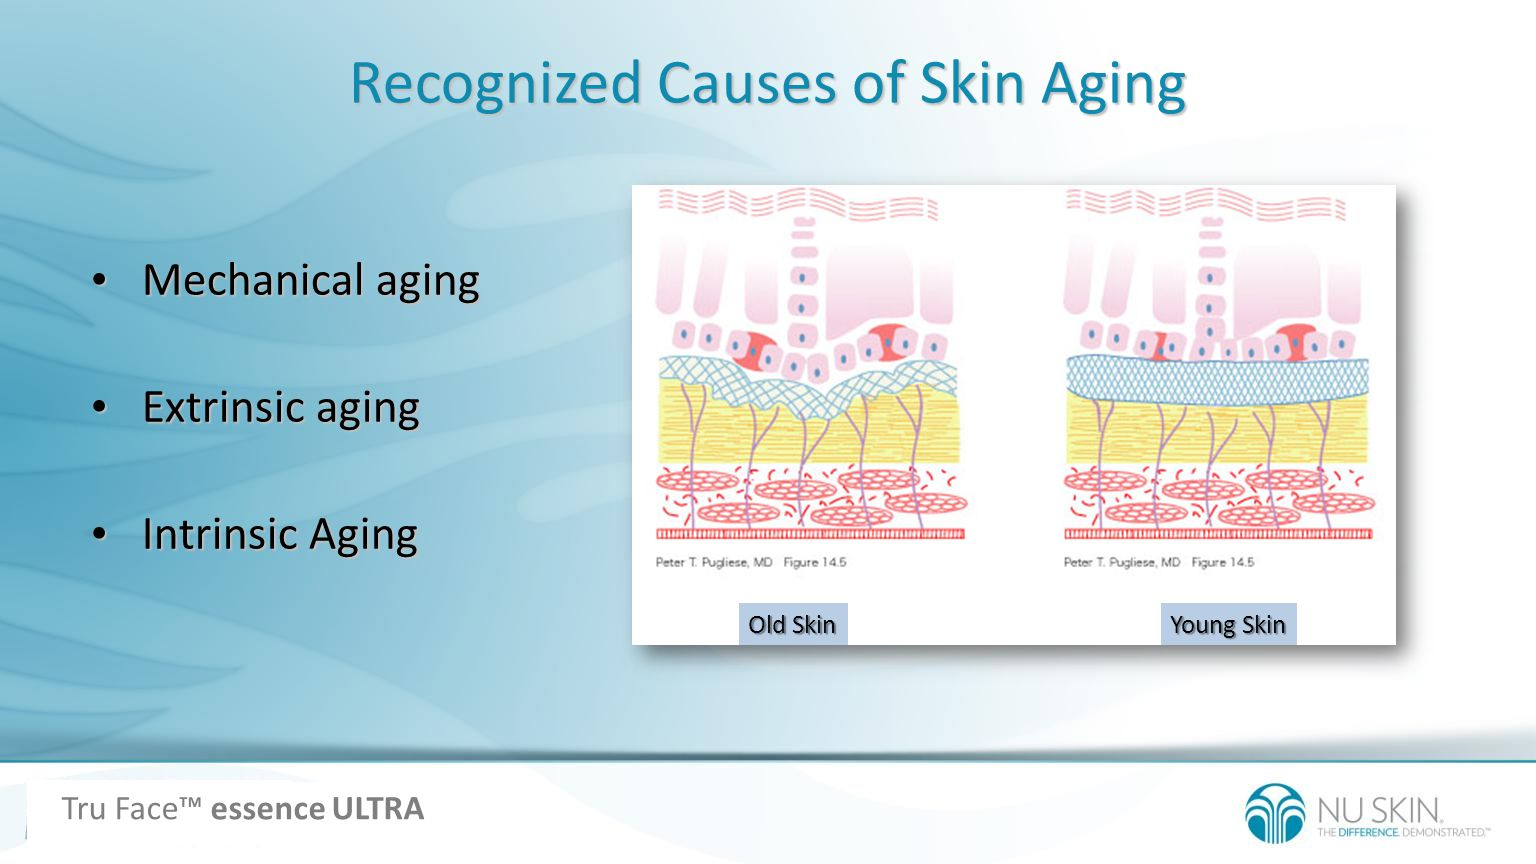 Recognized Causes of Skin Aging Mechanical aging Mechanical aging Extrinsic aging Extrinsic aging Intrinsic Aging Intrinsic Aging Old Skin Young Skin